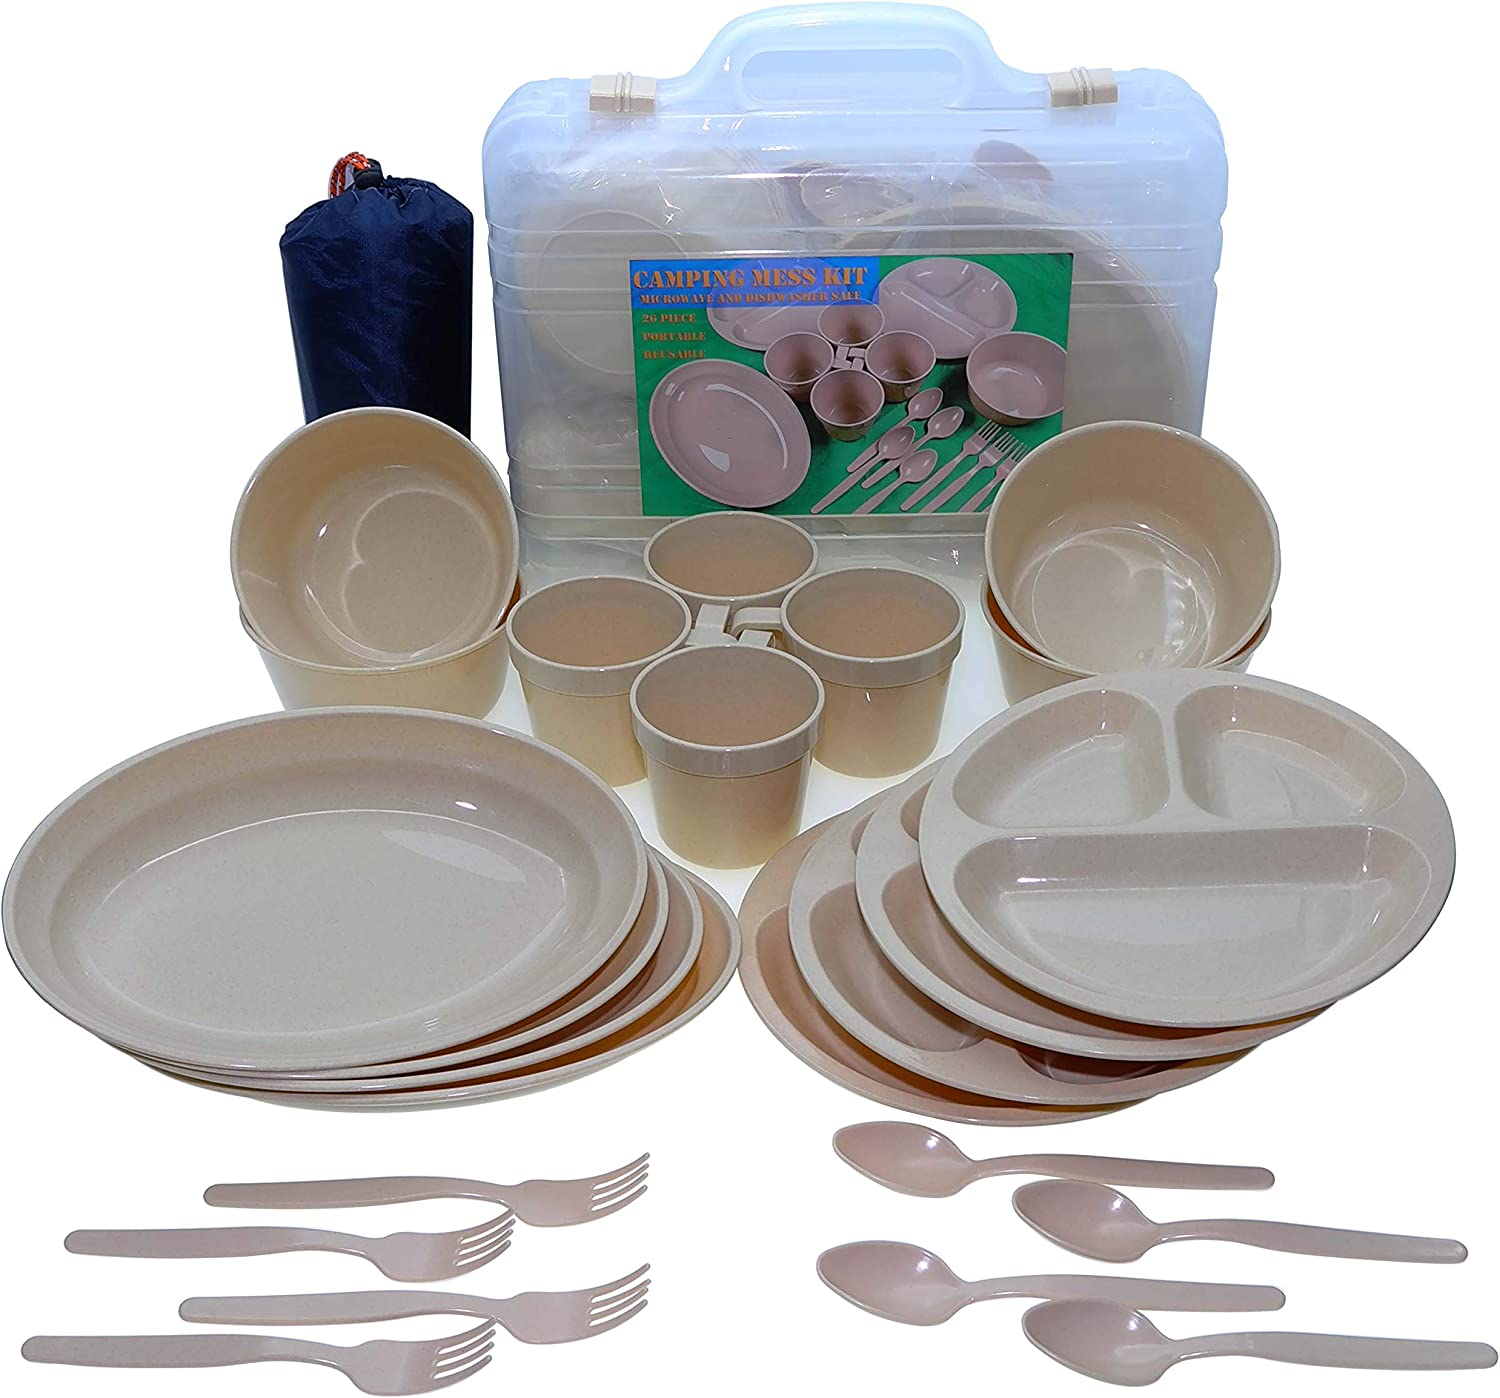 Camping Dish Set 26 Pieces Dinnerware Set with Camping Plates Cups and Bowls Eating Utensils,4 Person Backpacking Gear with Carry Case and Large Beach Blanket